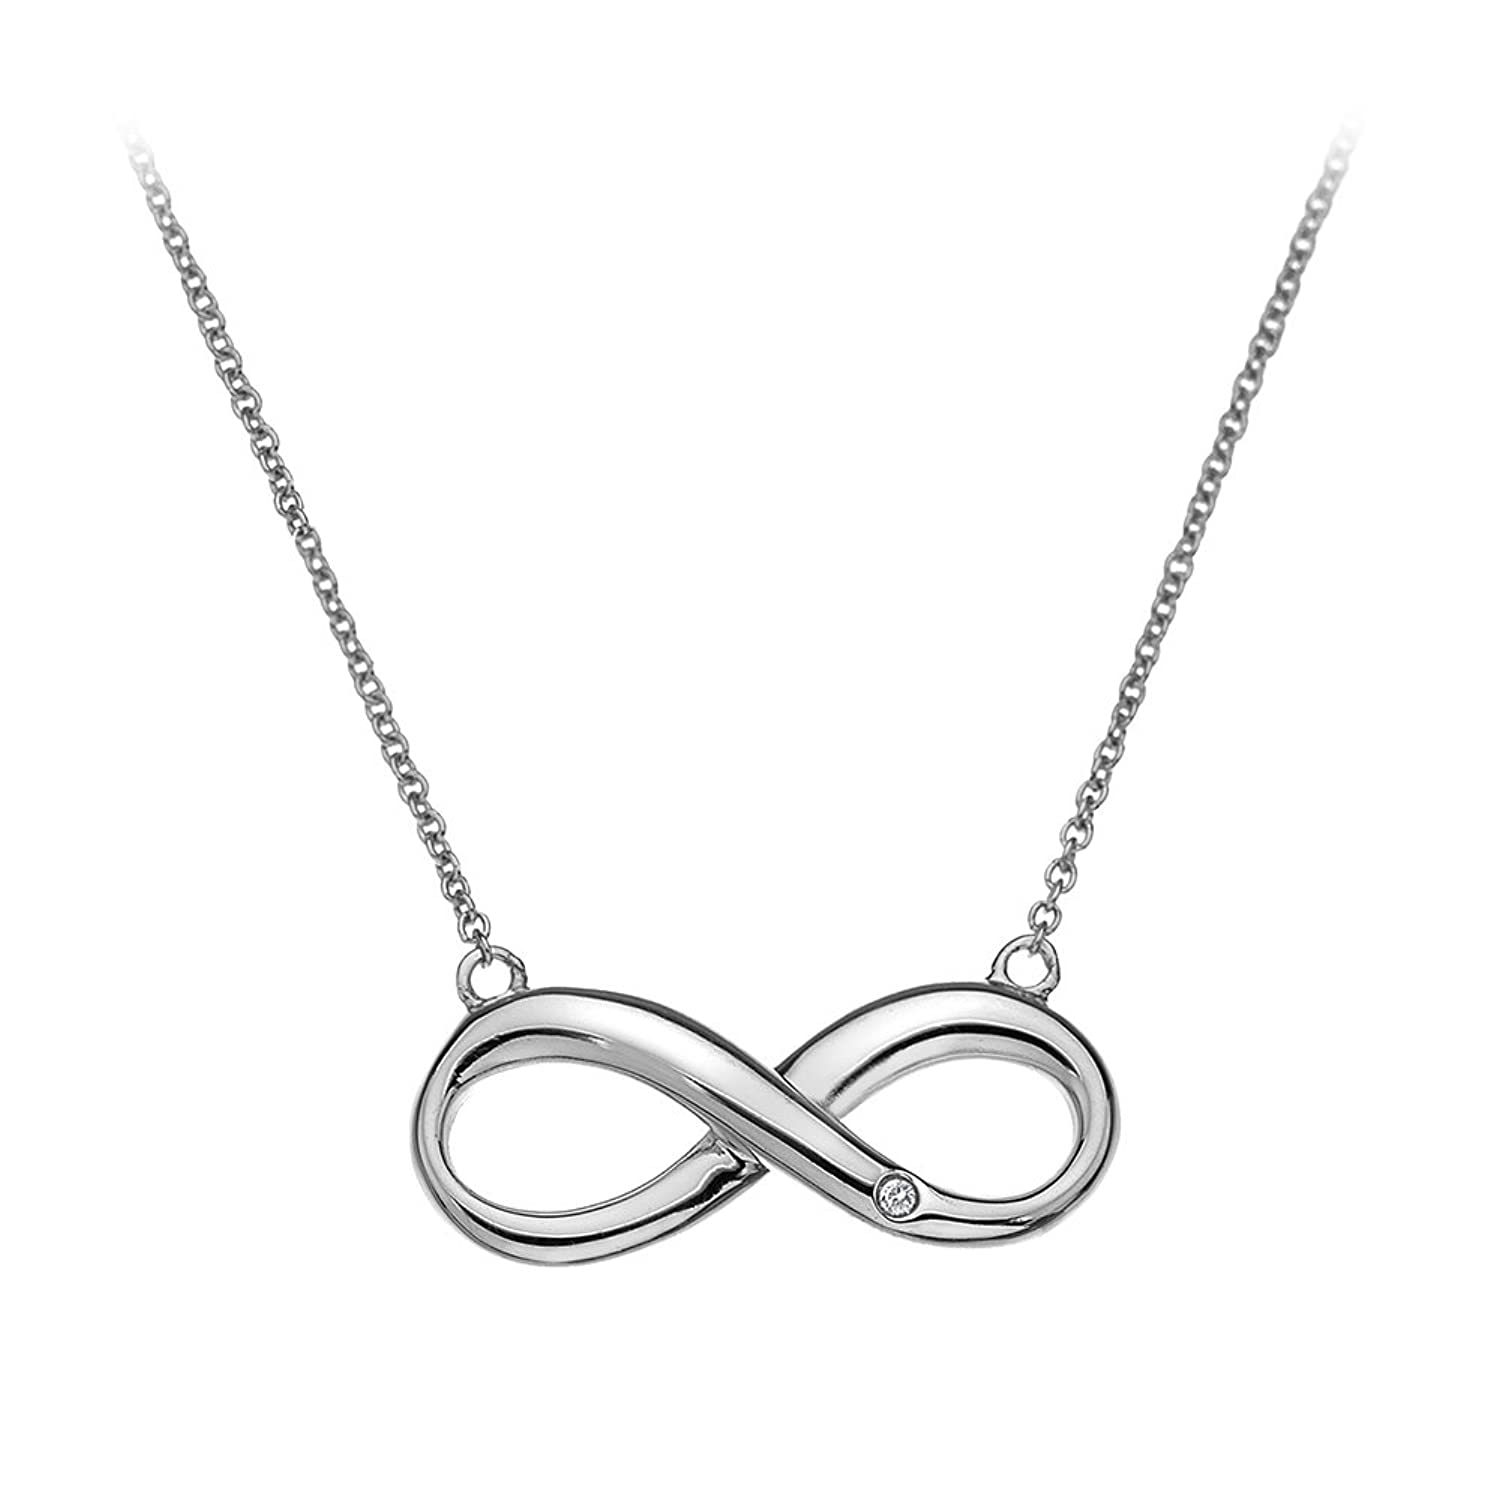 Sterling Silver Diamond Accent Infinity Necklace Amazon